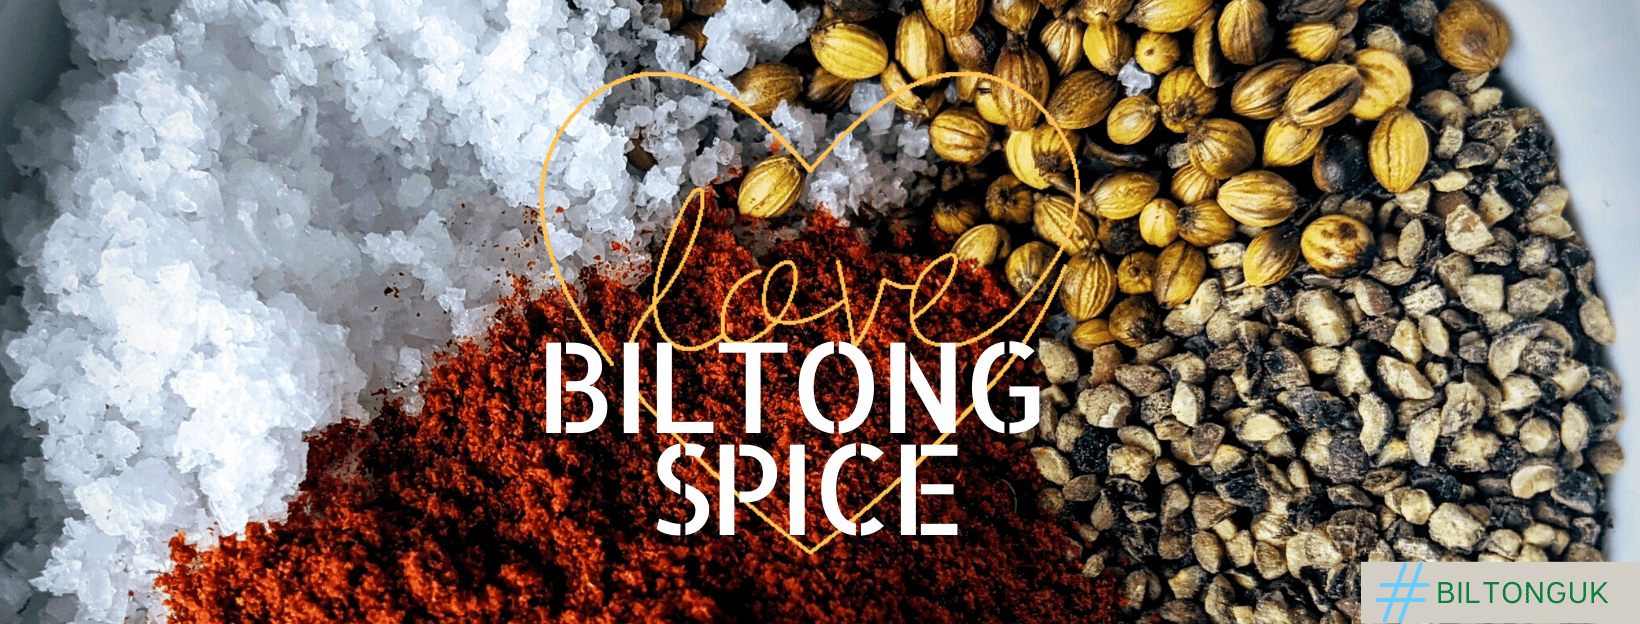 Biltong kits VS DIY Biltong spice, which is more beneficial and why?